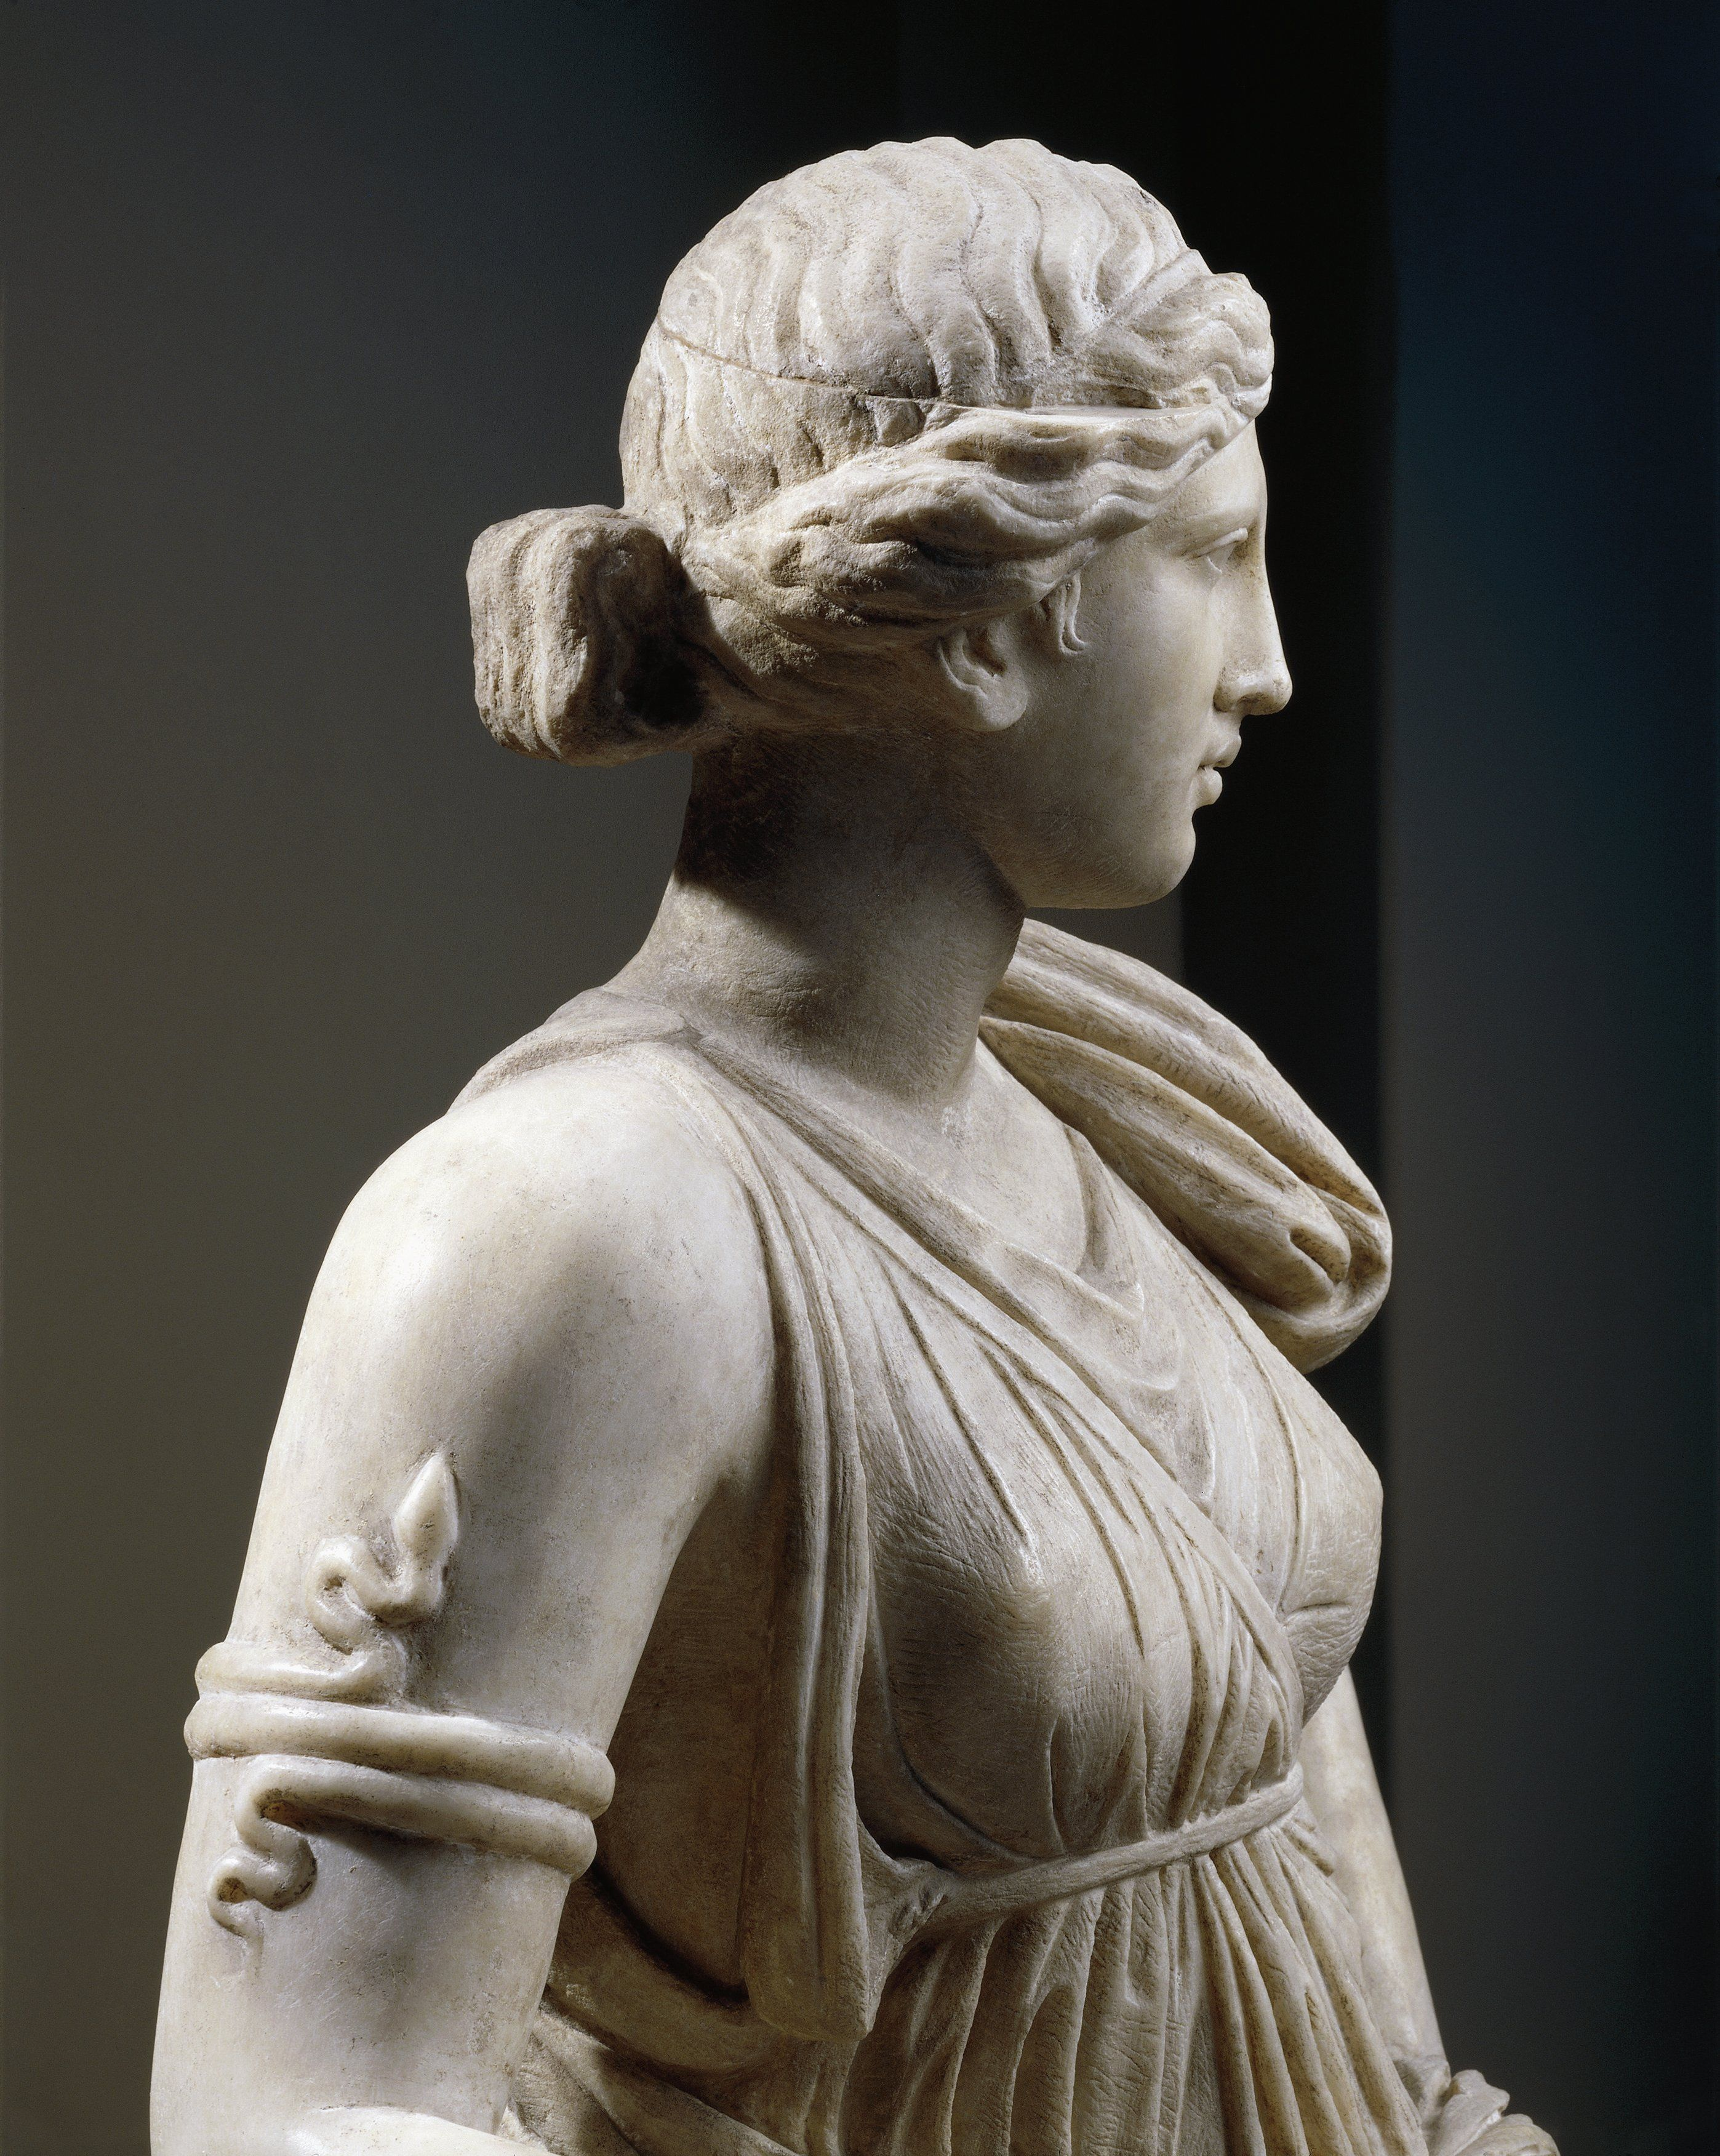 Marble statue of Artemis, copy of Greek original of 4th century b.c., detail of bust, arm with snake-shaped bracelet, from Mytilene, Island of Lesbos, Greece